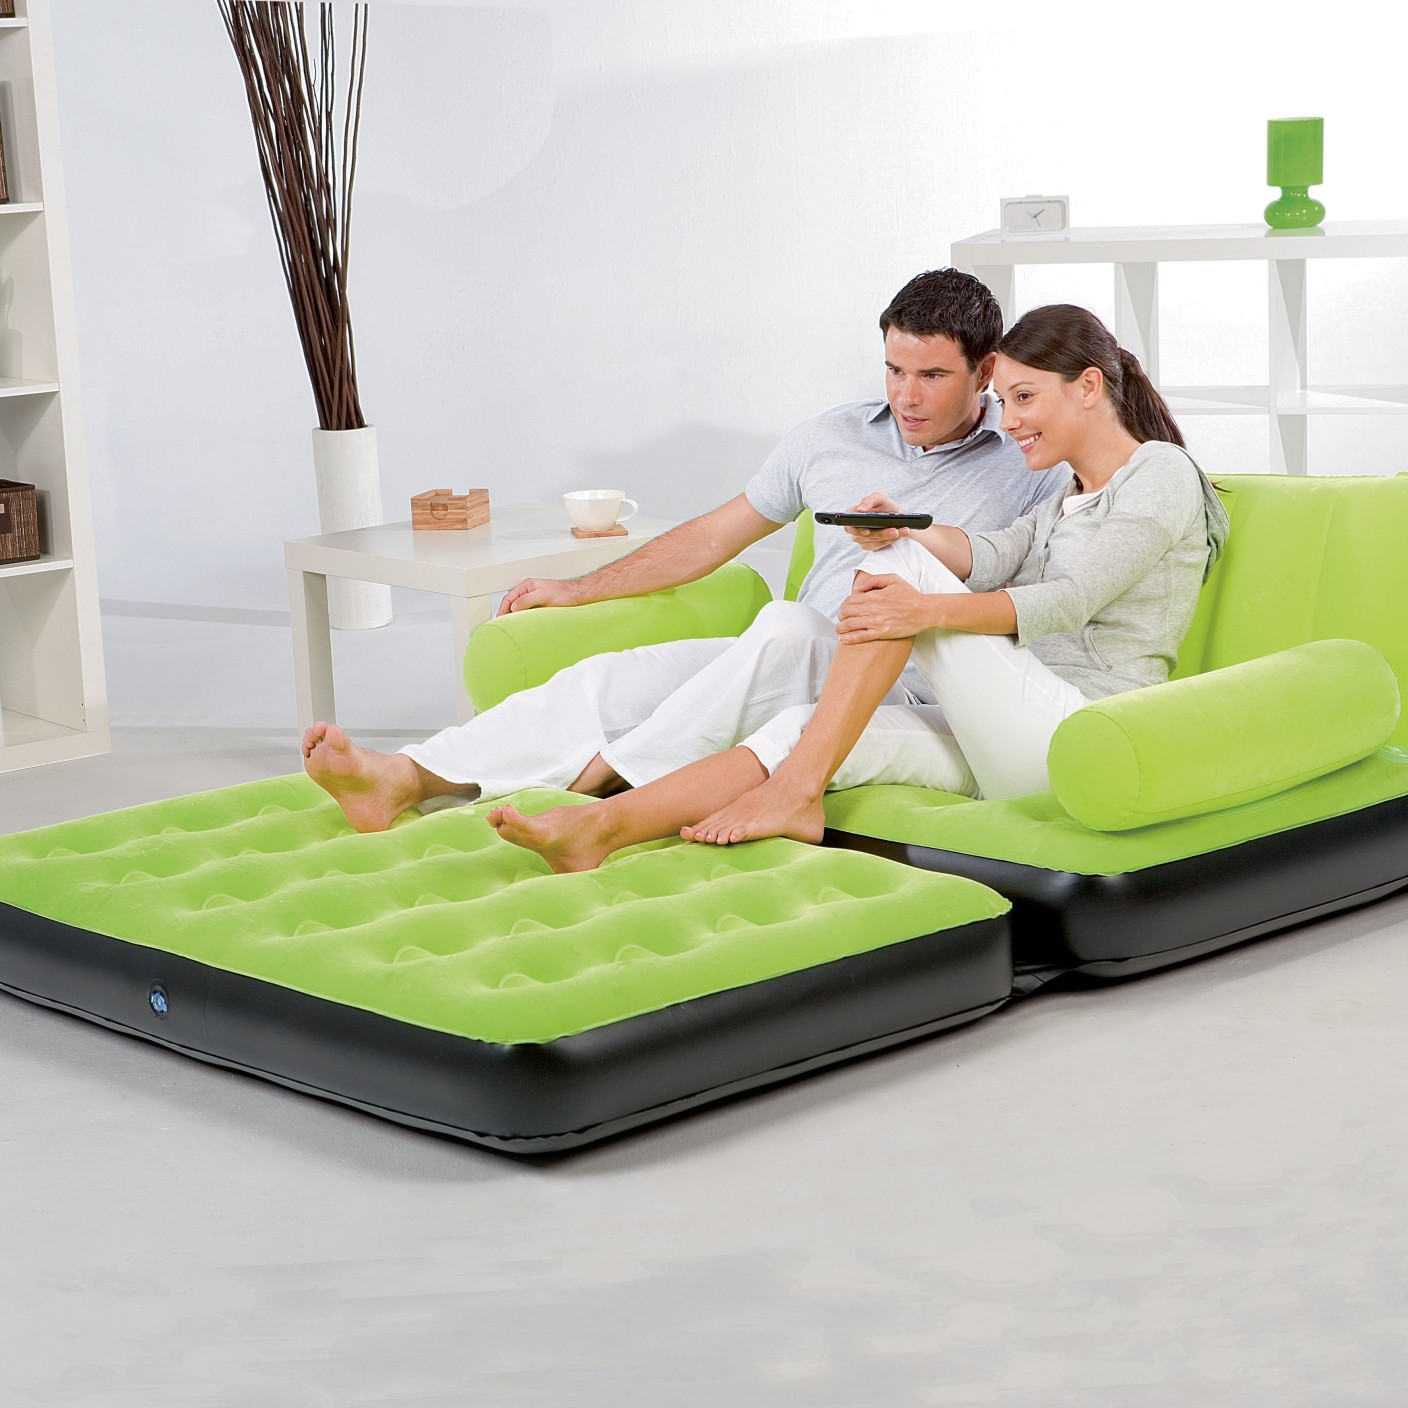 Inflatable Sofa Bed Flipkart: Bestway Karmax PVC 3 Seater Inflatable Sofa (Color